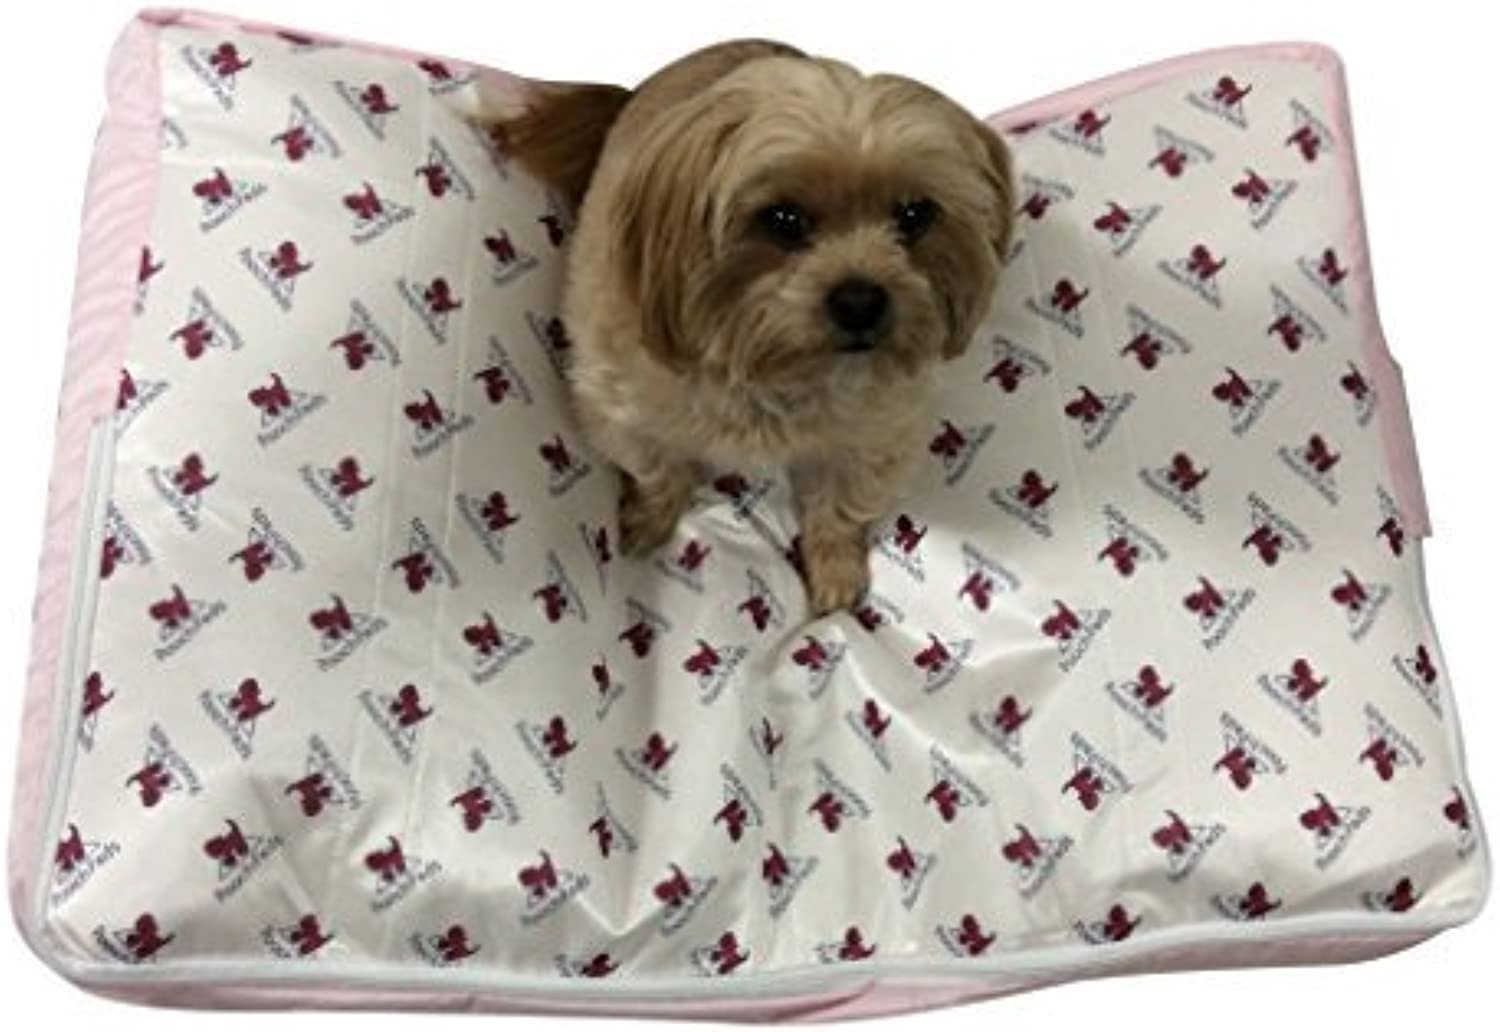 PoochPads Dog Bed, Pink, Small 30 x 21 by Pooch Pads